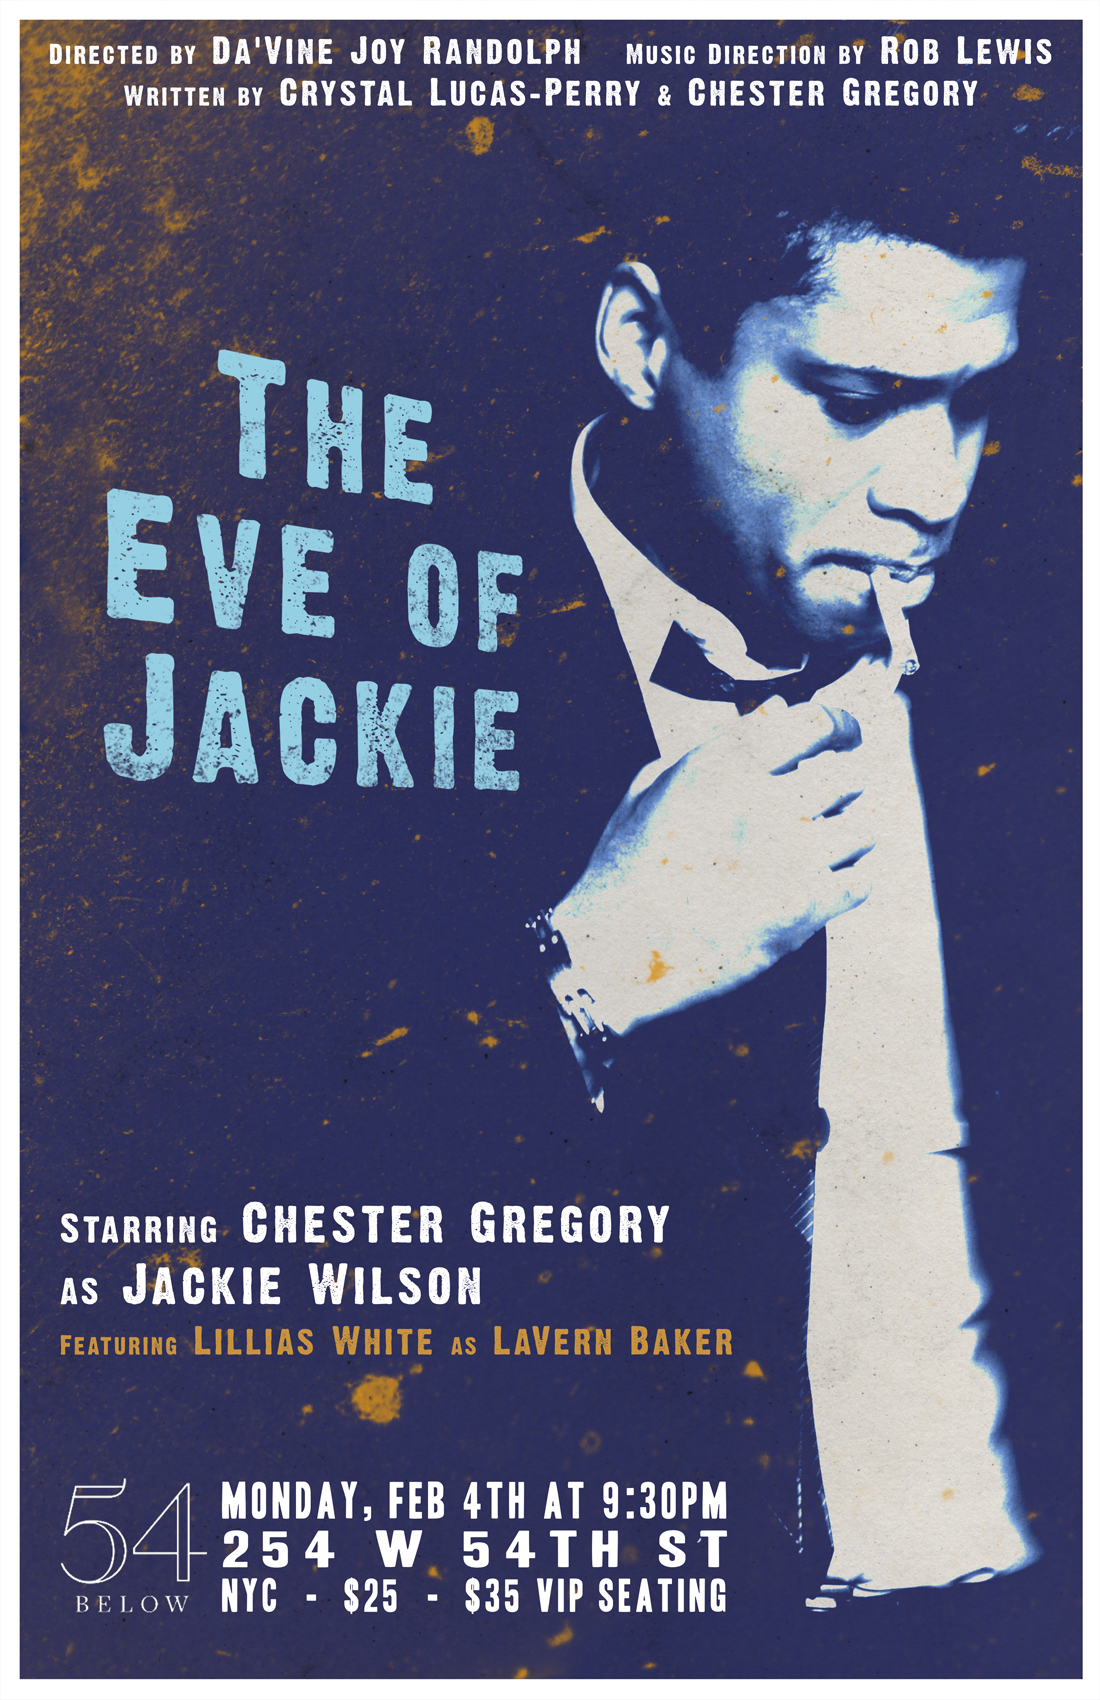 Chester Gregory: The Eve of Jackie with Special Guest Lillias White